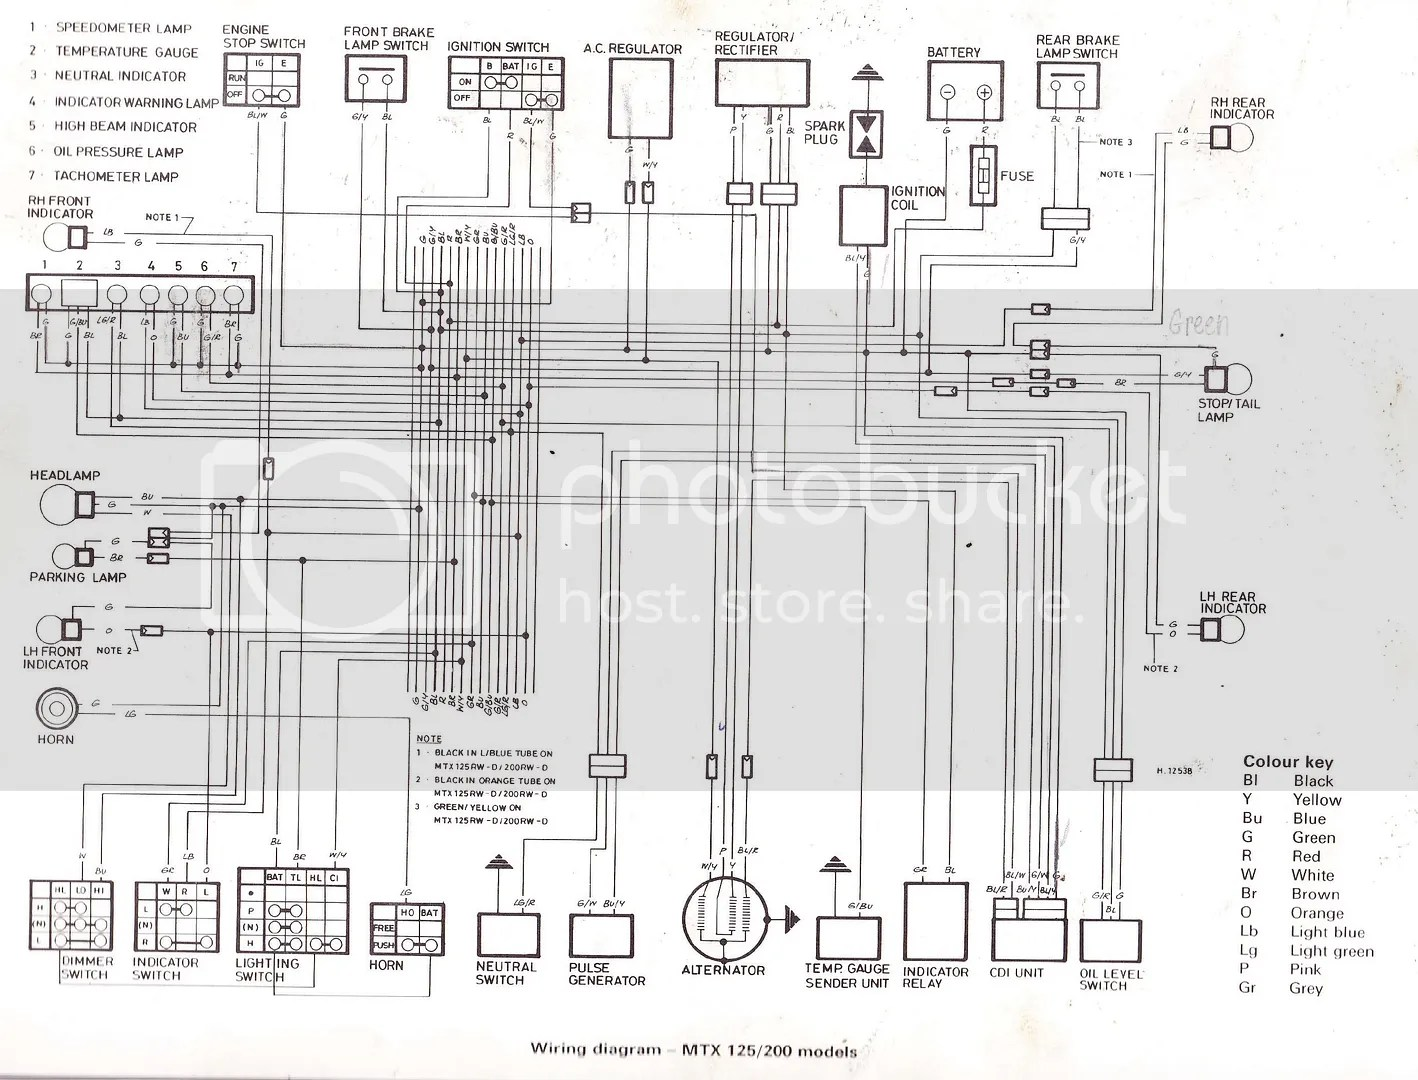 G3 Wiring Diagram Manual E Books Aluminum Boat Free Picture Schematic Best Librarywiring Suzuki Rc 100 Auto Electrical